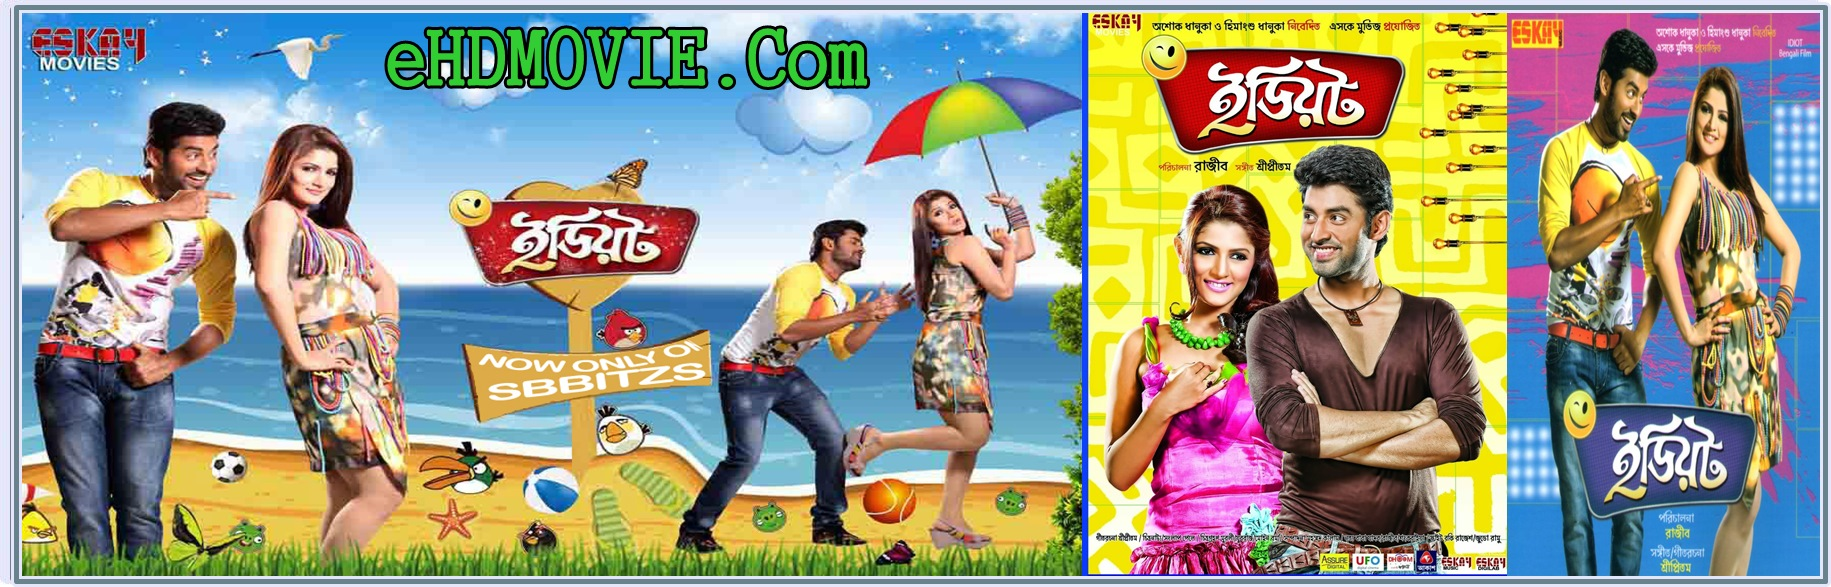 Idiot 2012 Bengali Full Movie Original HEVC - 720p HDTV-Rip 700MB - 1.4GB